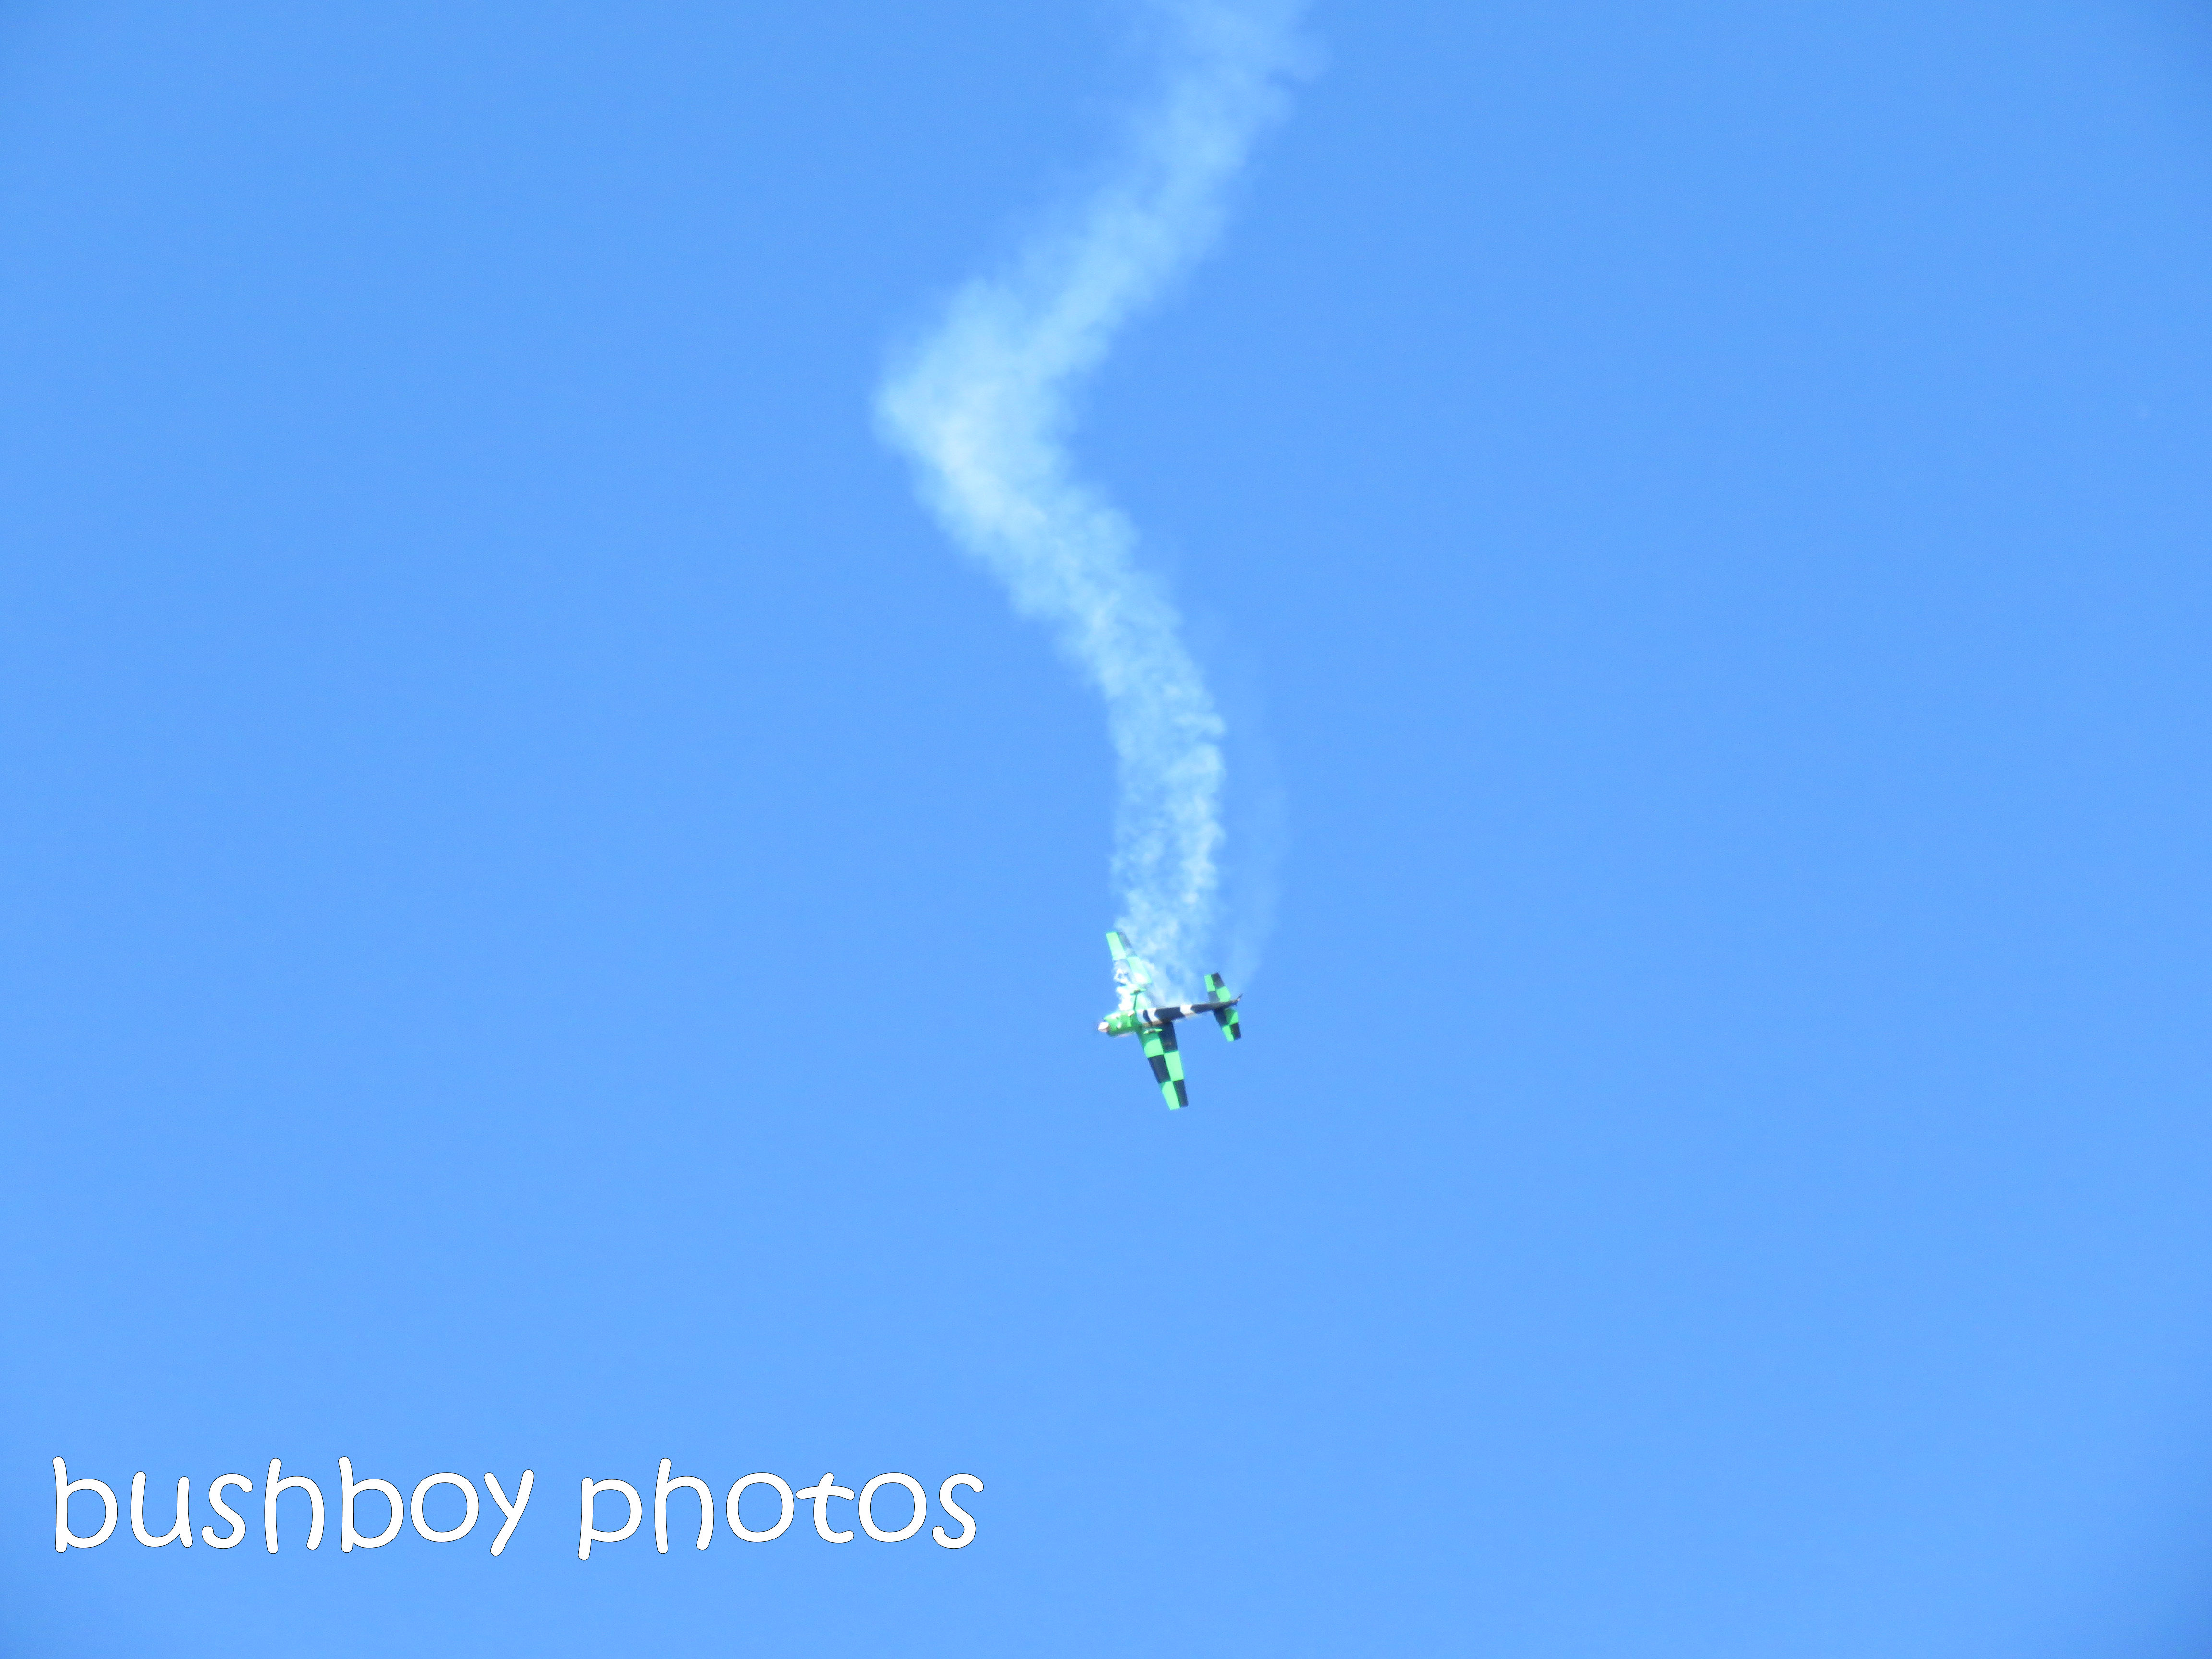 plane_stunt1_lismore air show_named_july 2018